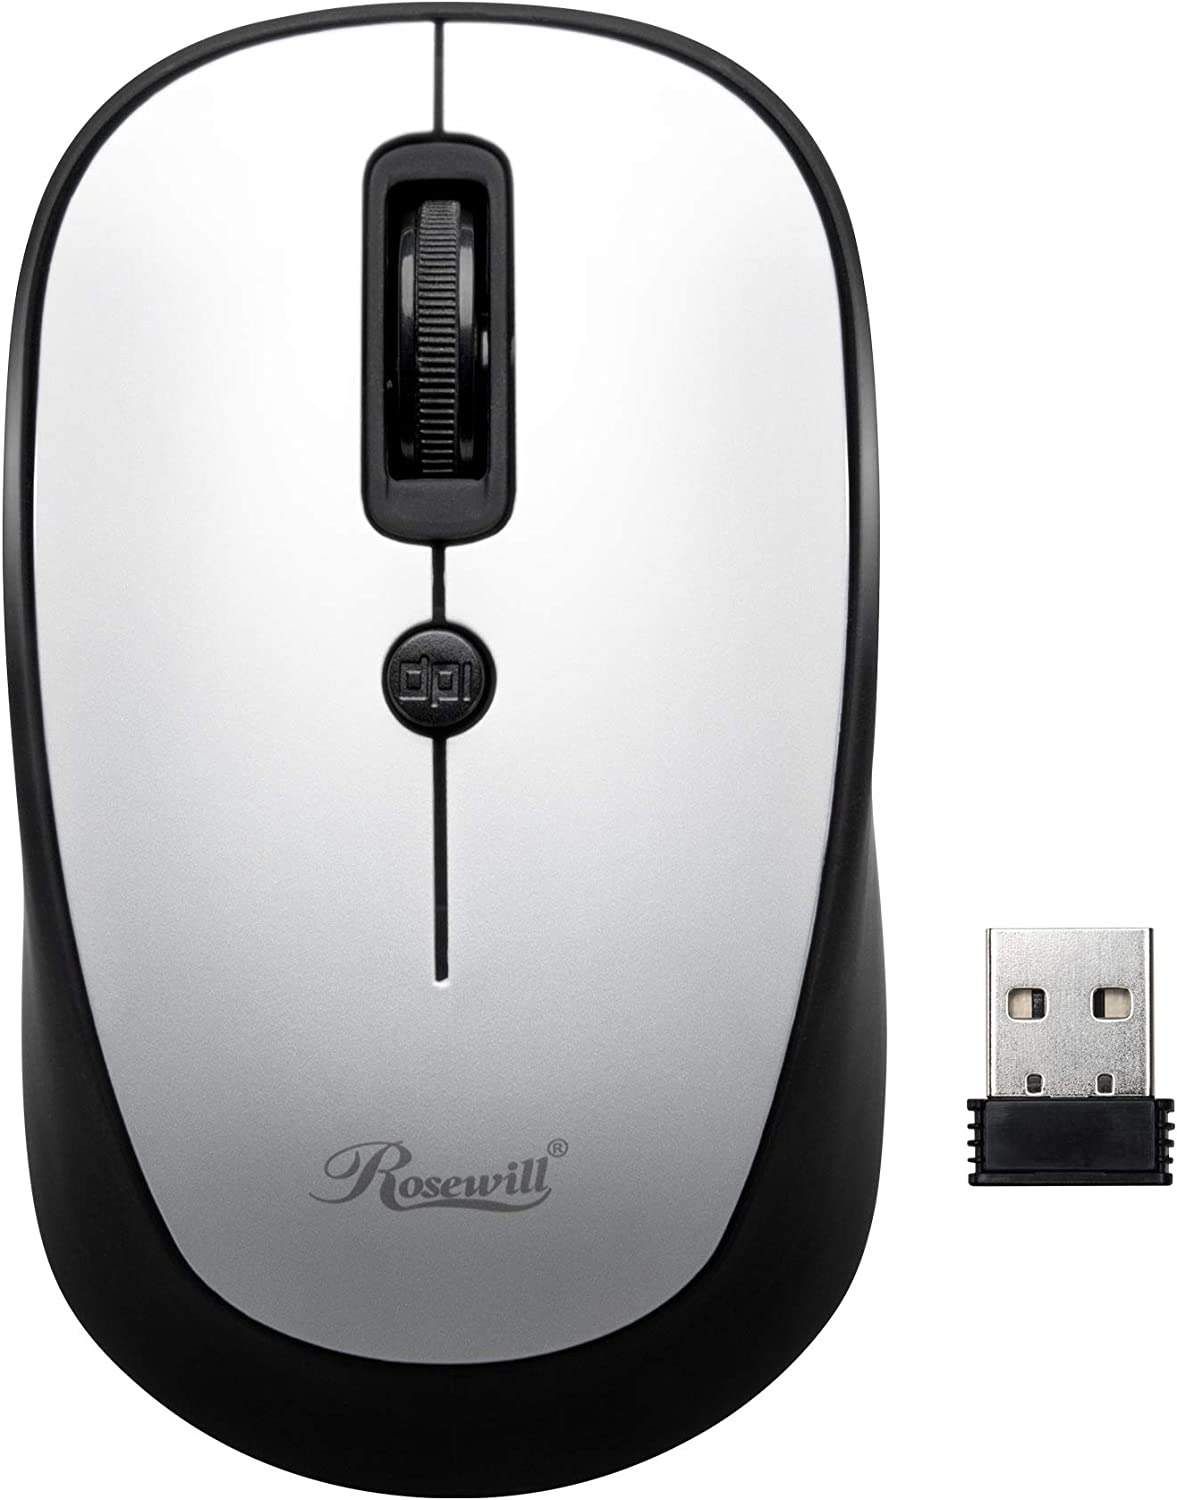 White PC Office Style for Laptop Office Mouse USB Wireless Receiver Adjustable DPI MacBook Rosewill RWM-002 Portable Cordless Compact Travel Mouse Computer Optical Sensor 4 Buttons Notebook